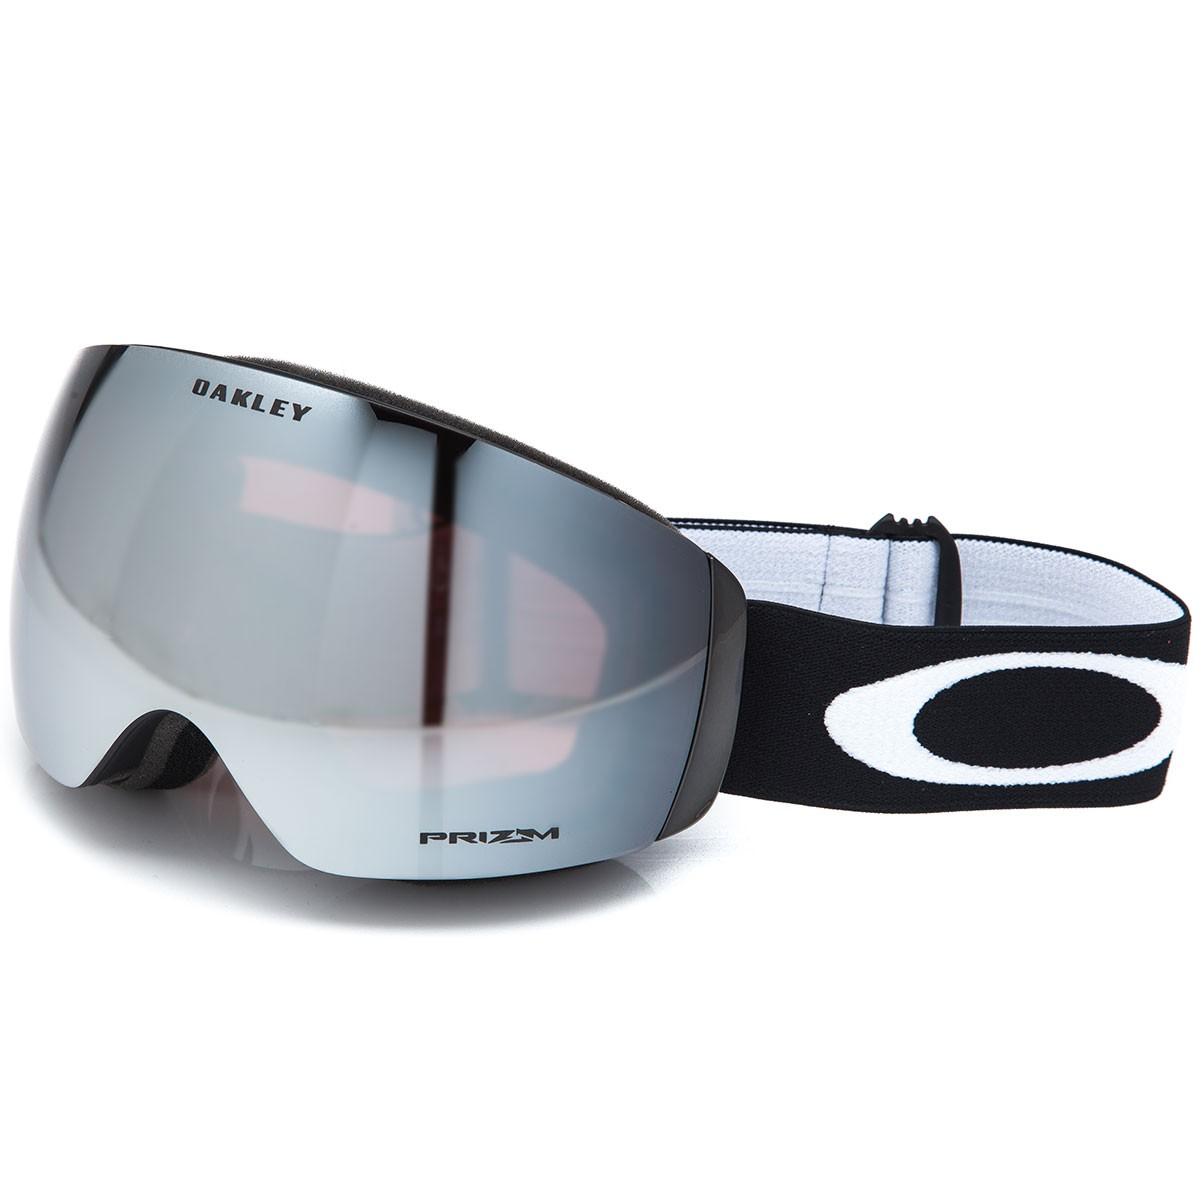 oakley flight deck goggles on sale  oakley flight deck xm snowboard goggles matte black with prizm black